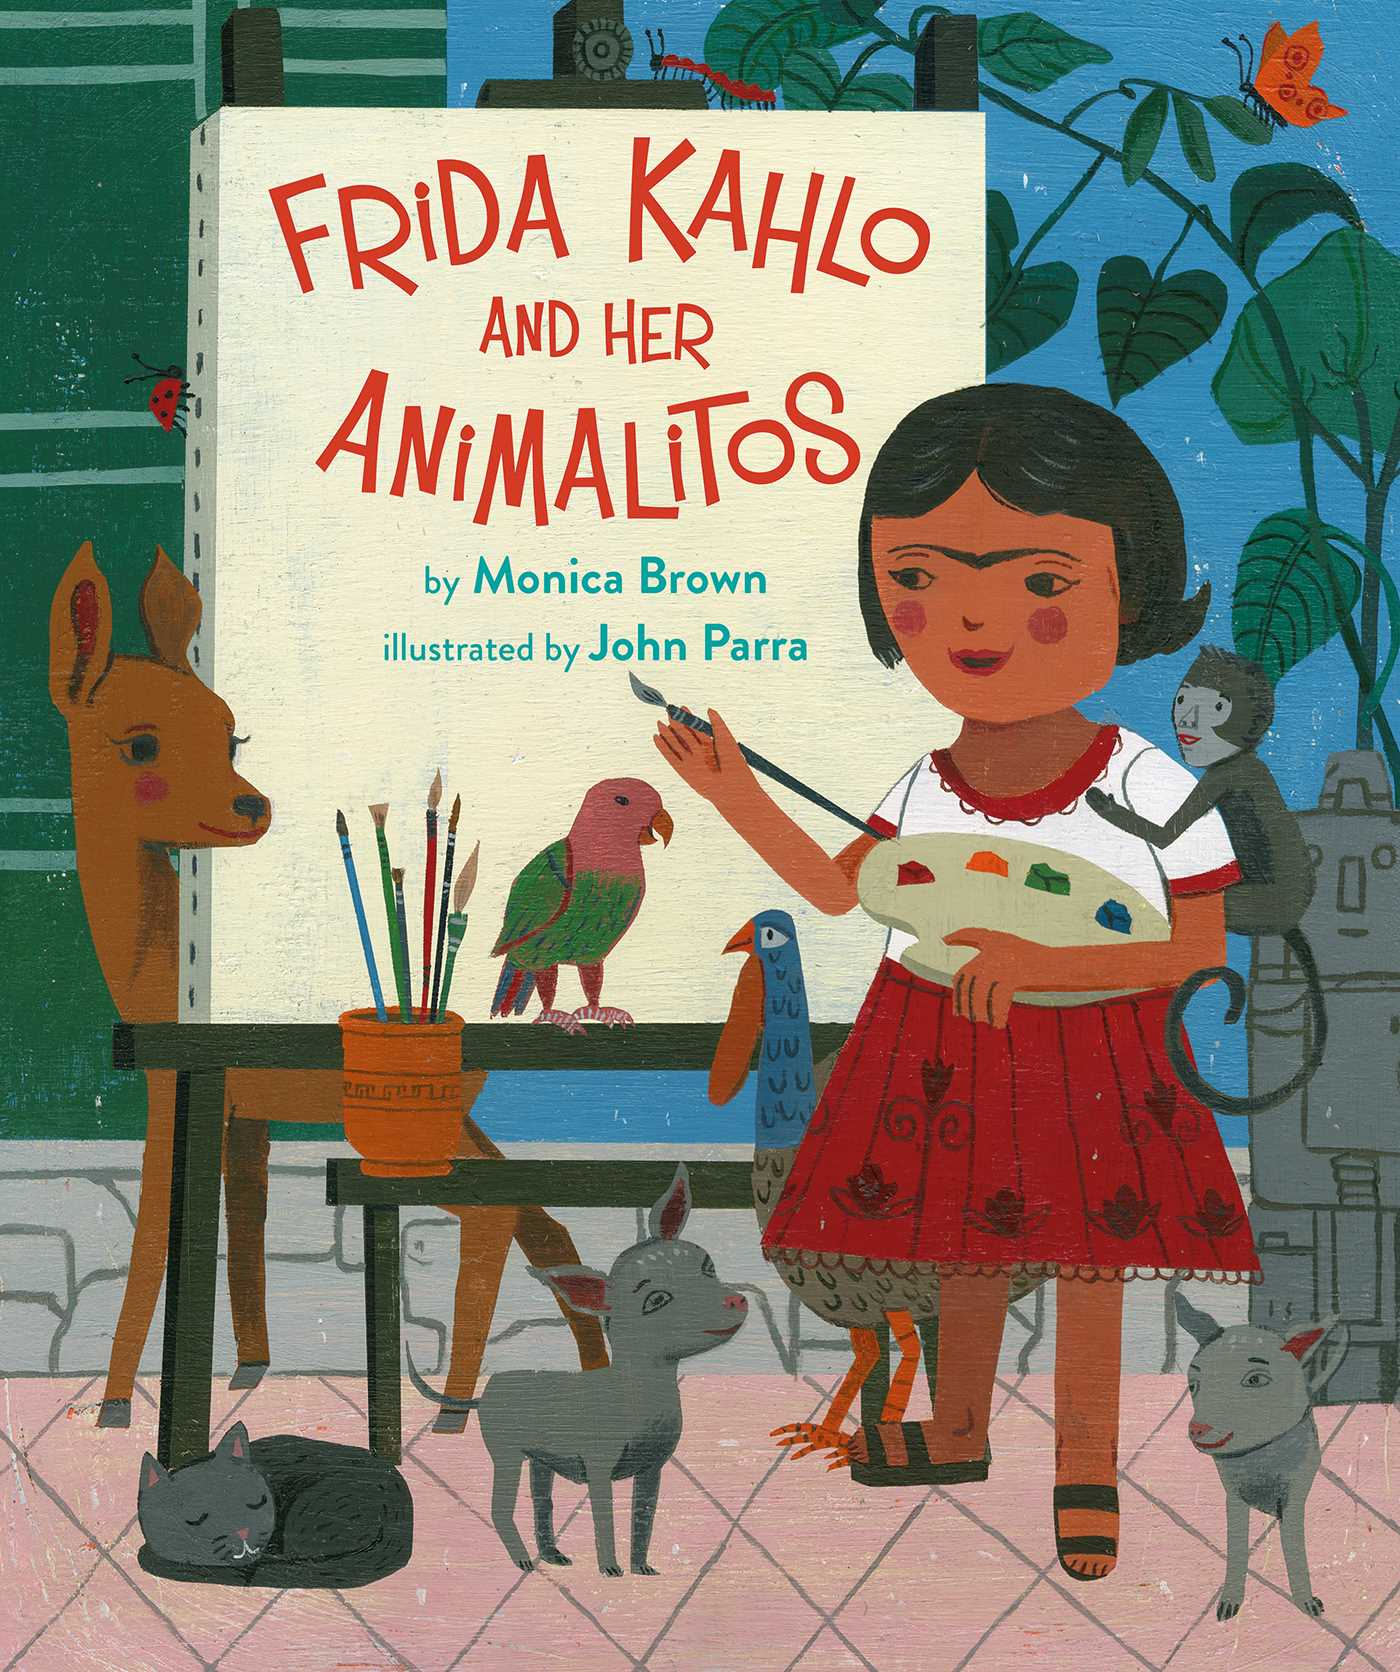 Sunday Story Time with John Parra (Illustrator of Frida Kahlo and Her Animalitos)